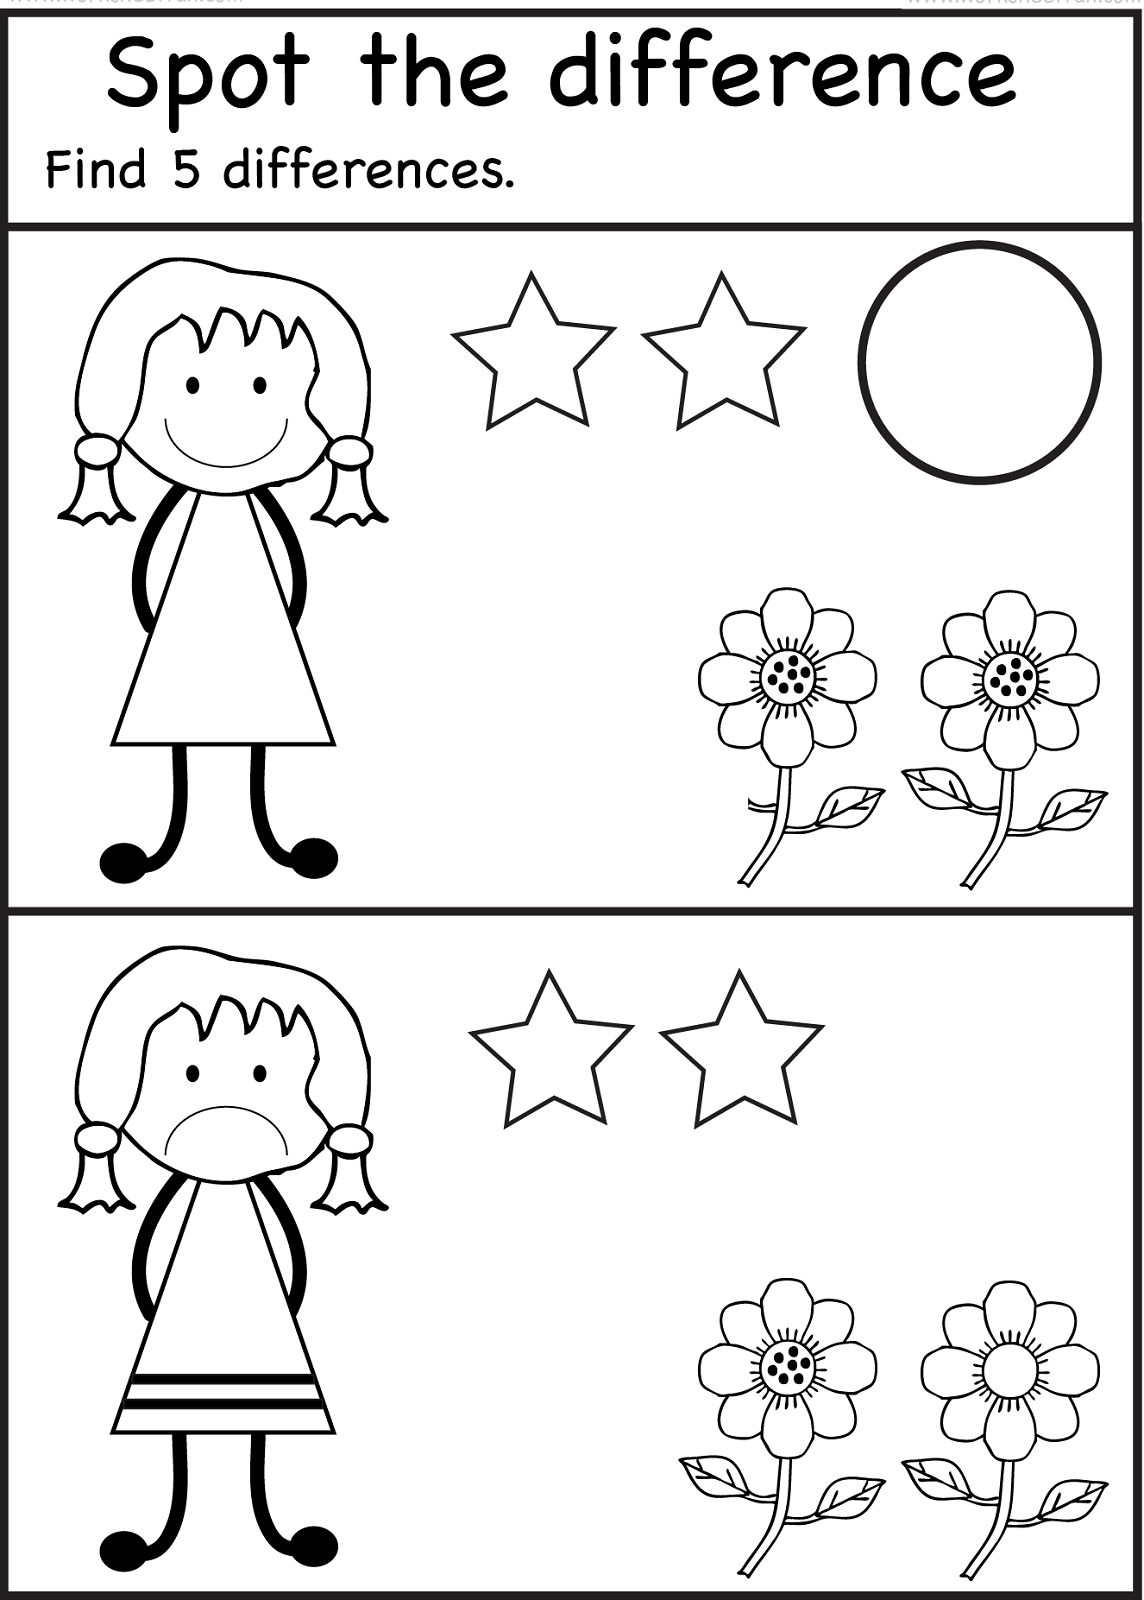 Everyone Is Different Worksheet